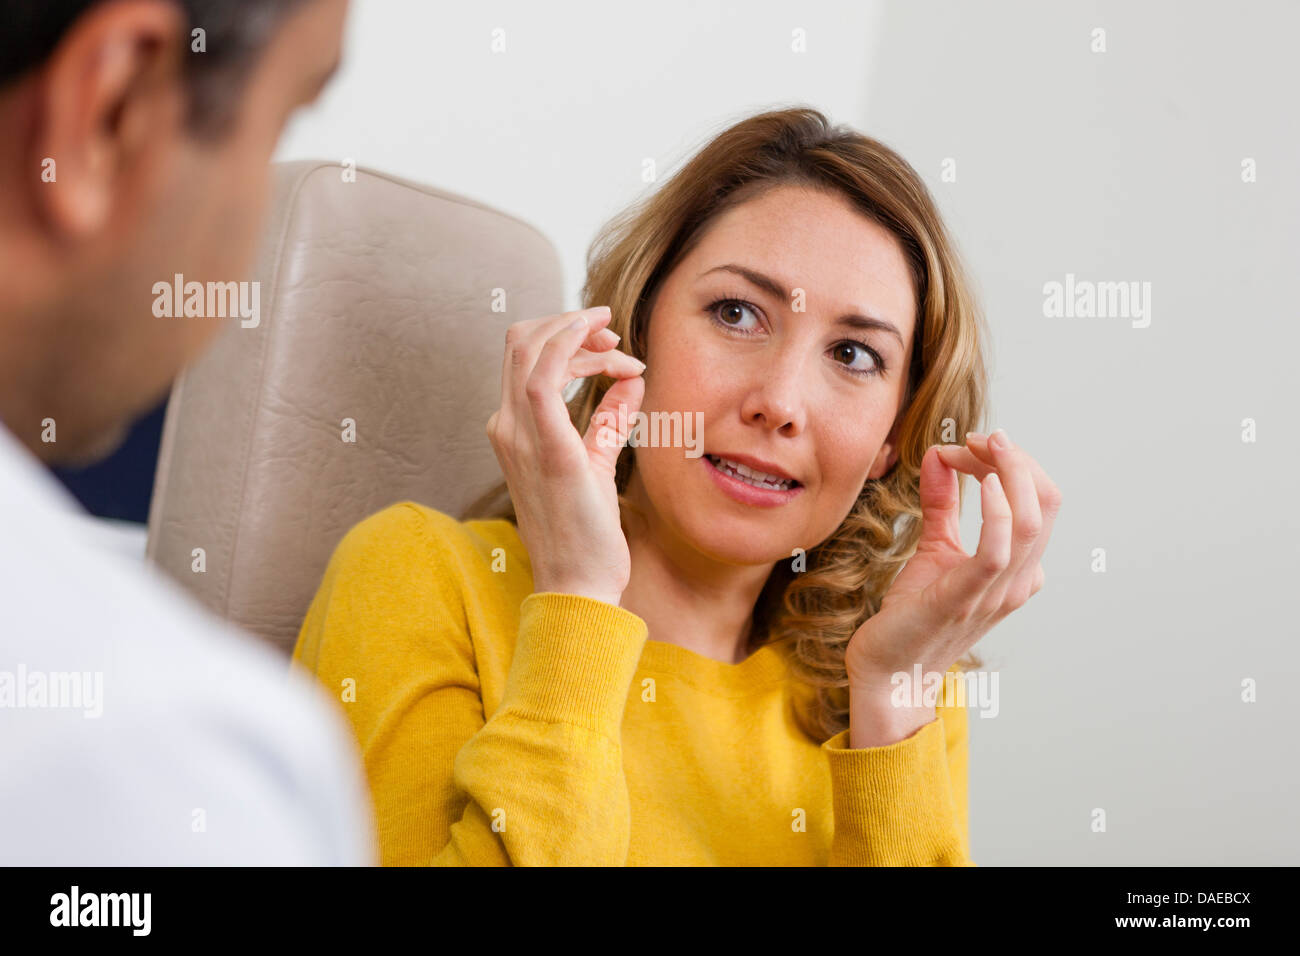 Patient explaining symptom to doctor in hospital - Stock Image